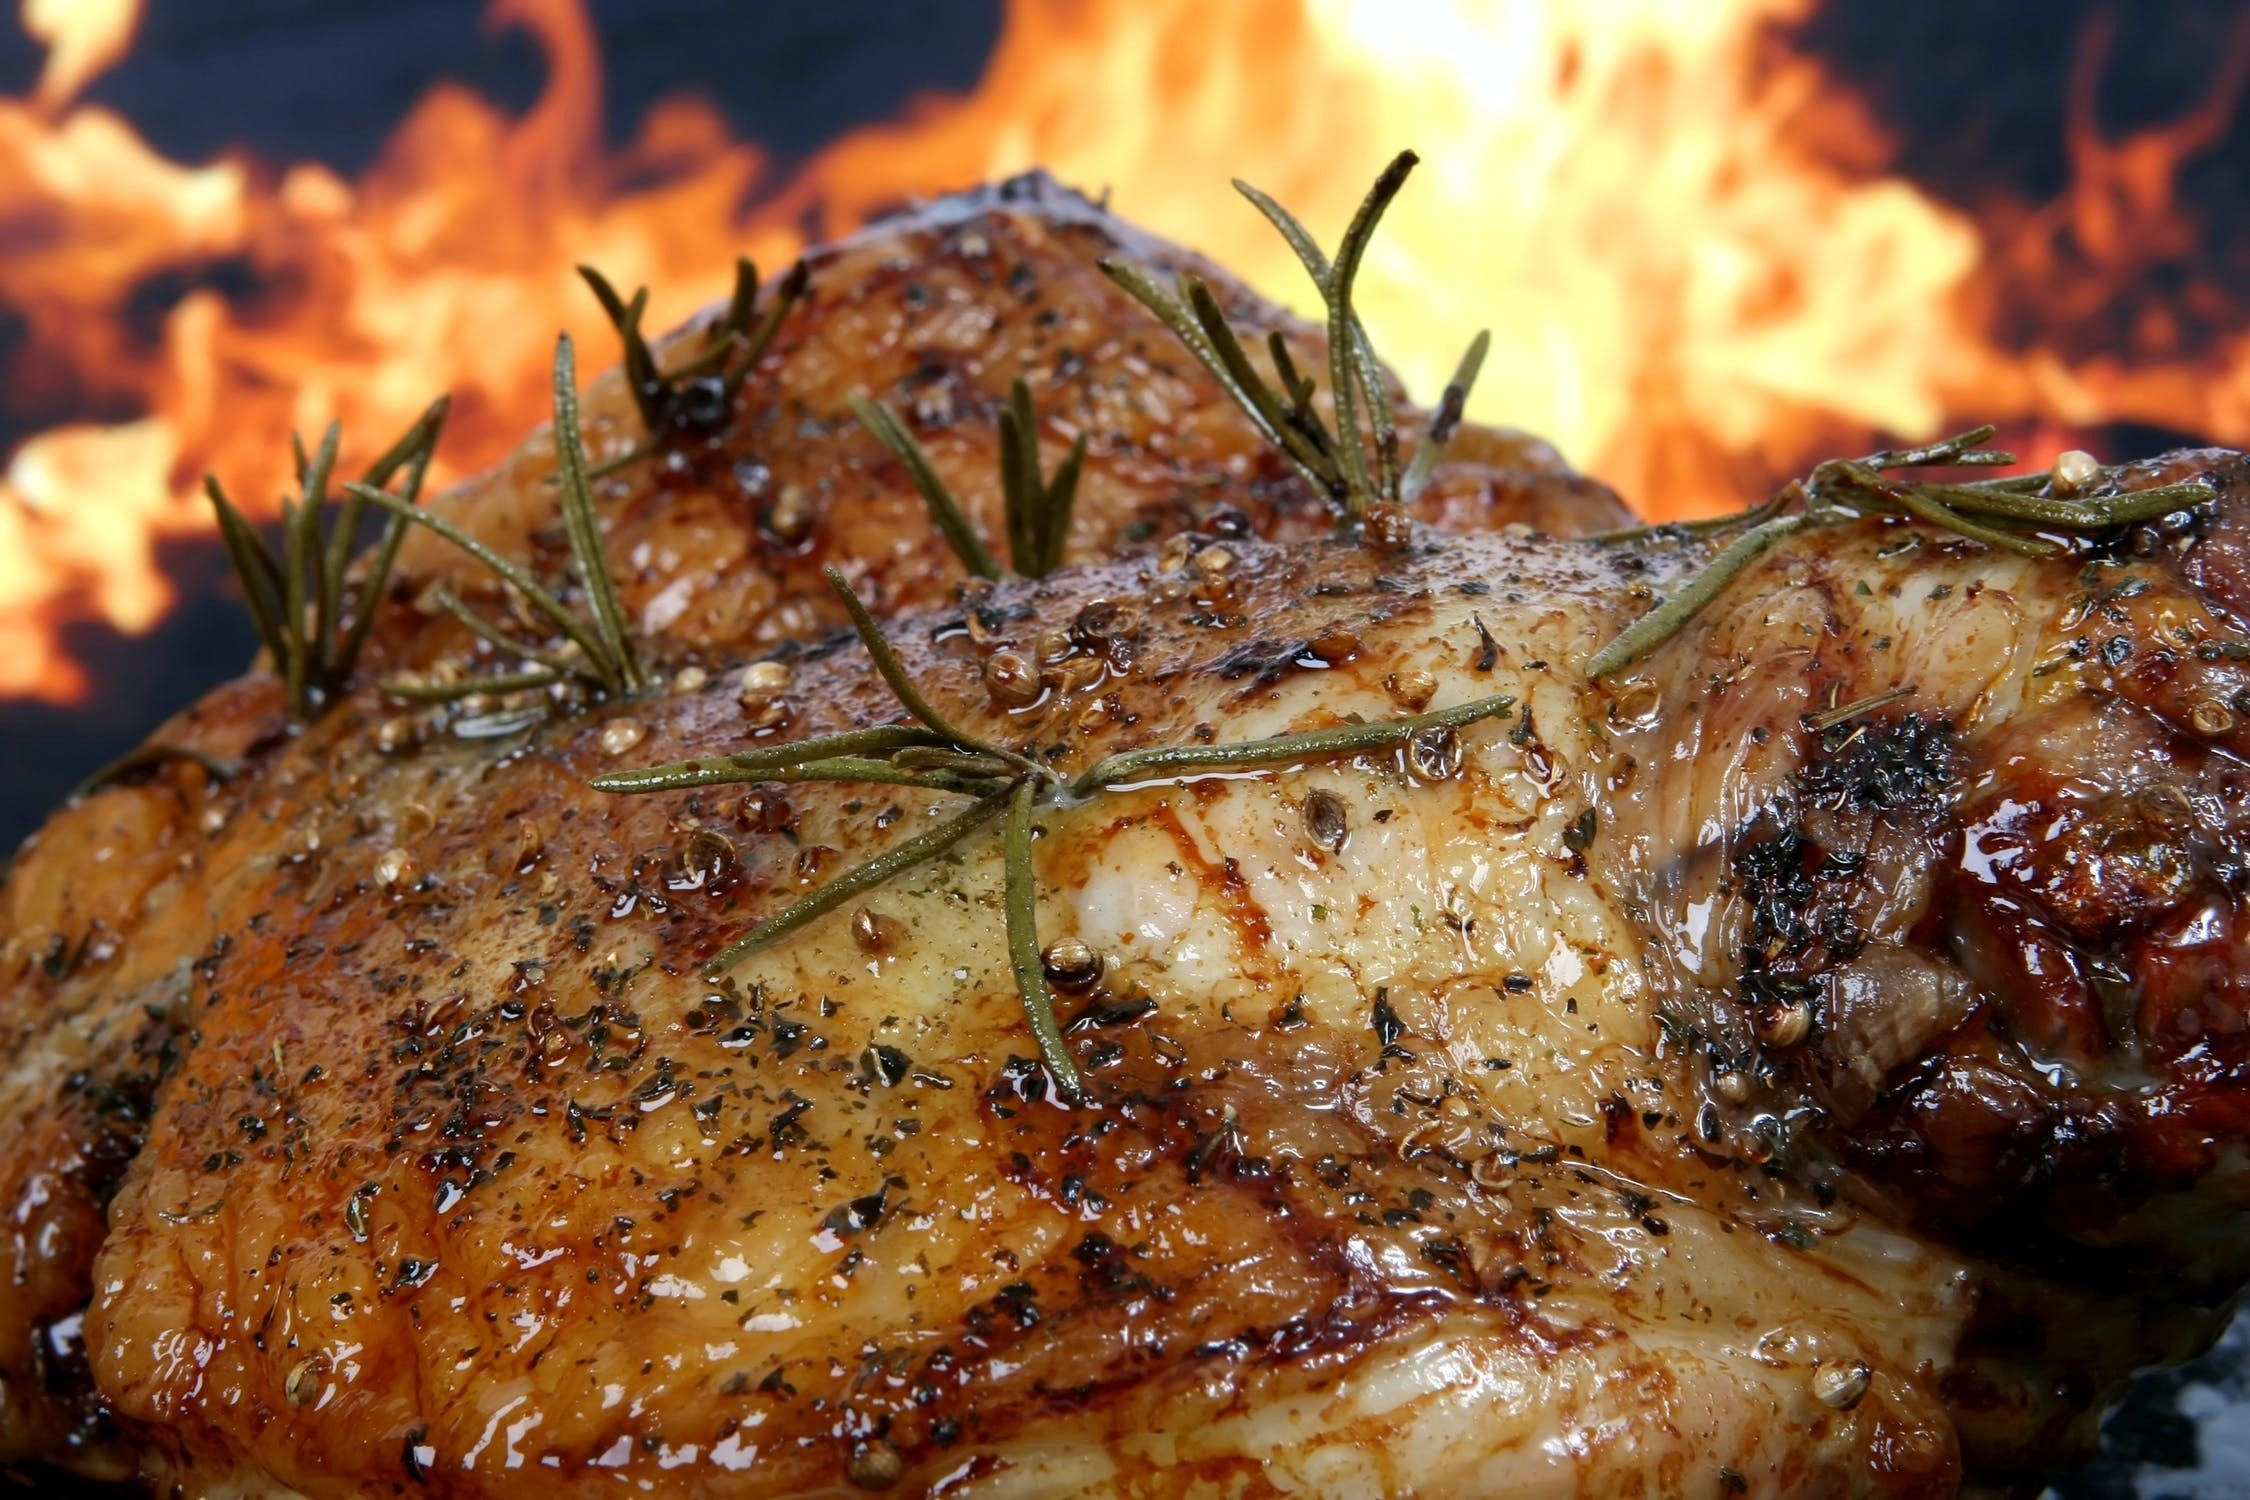 Thanksgiving is top day for home cooking fires